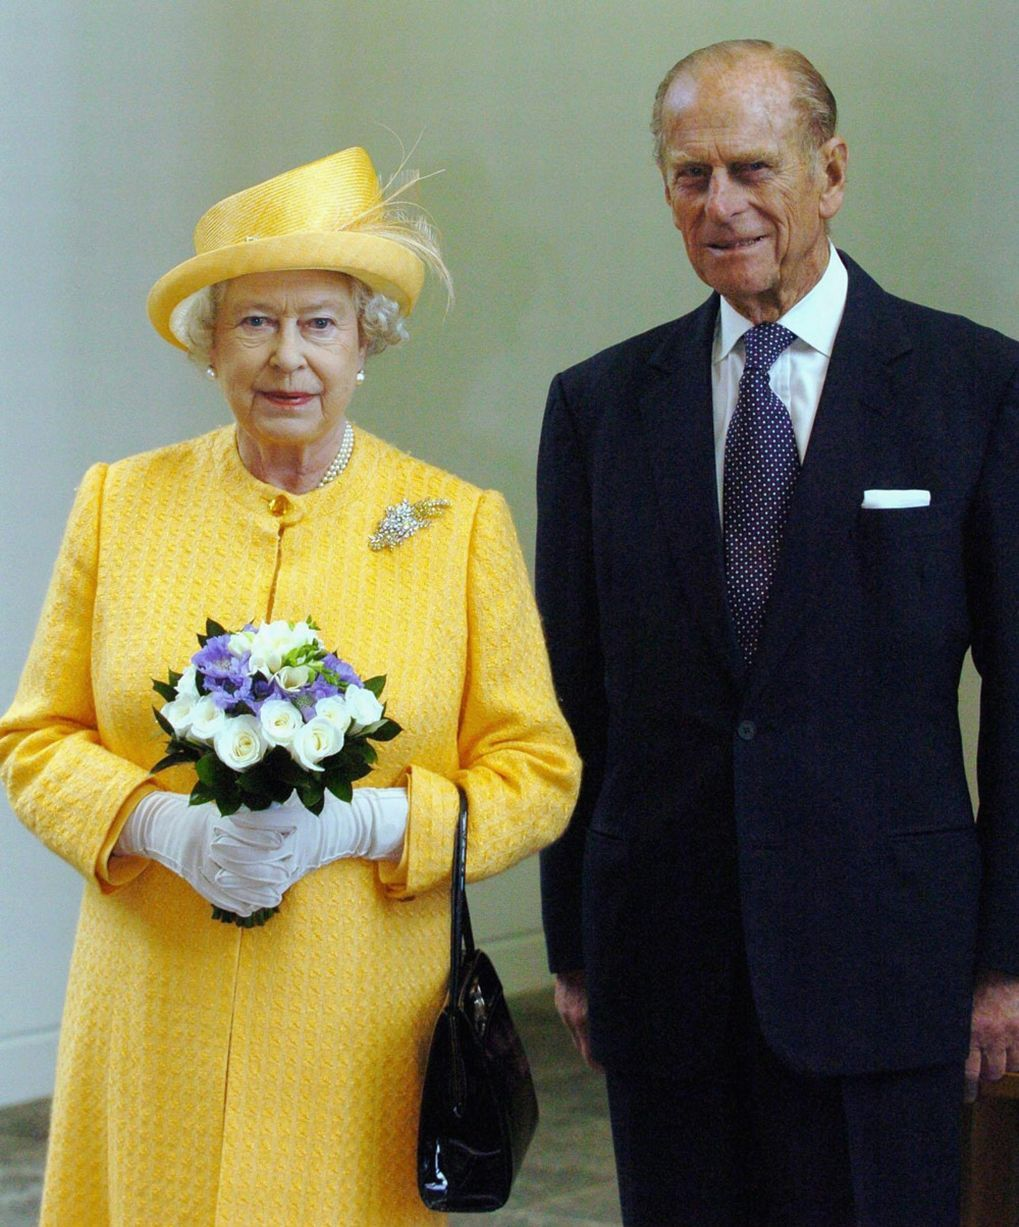 Vision In Yellow The Queen S Eye Catching Outfit Is Set Of By The Duke S Classical Suit Queen Elizabeth Ii Her Majesty The Queen Queen Elizabeth [ 1227 x 1019 Pixel ]